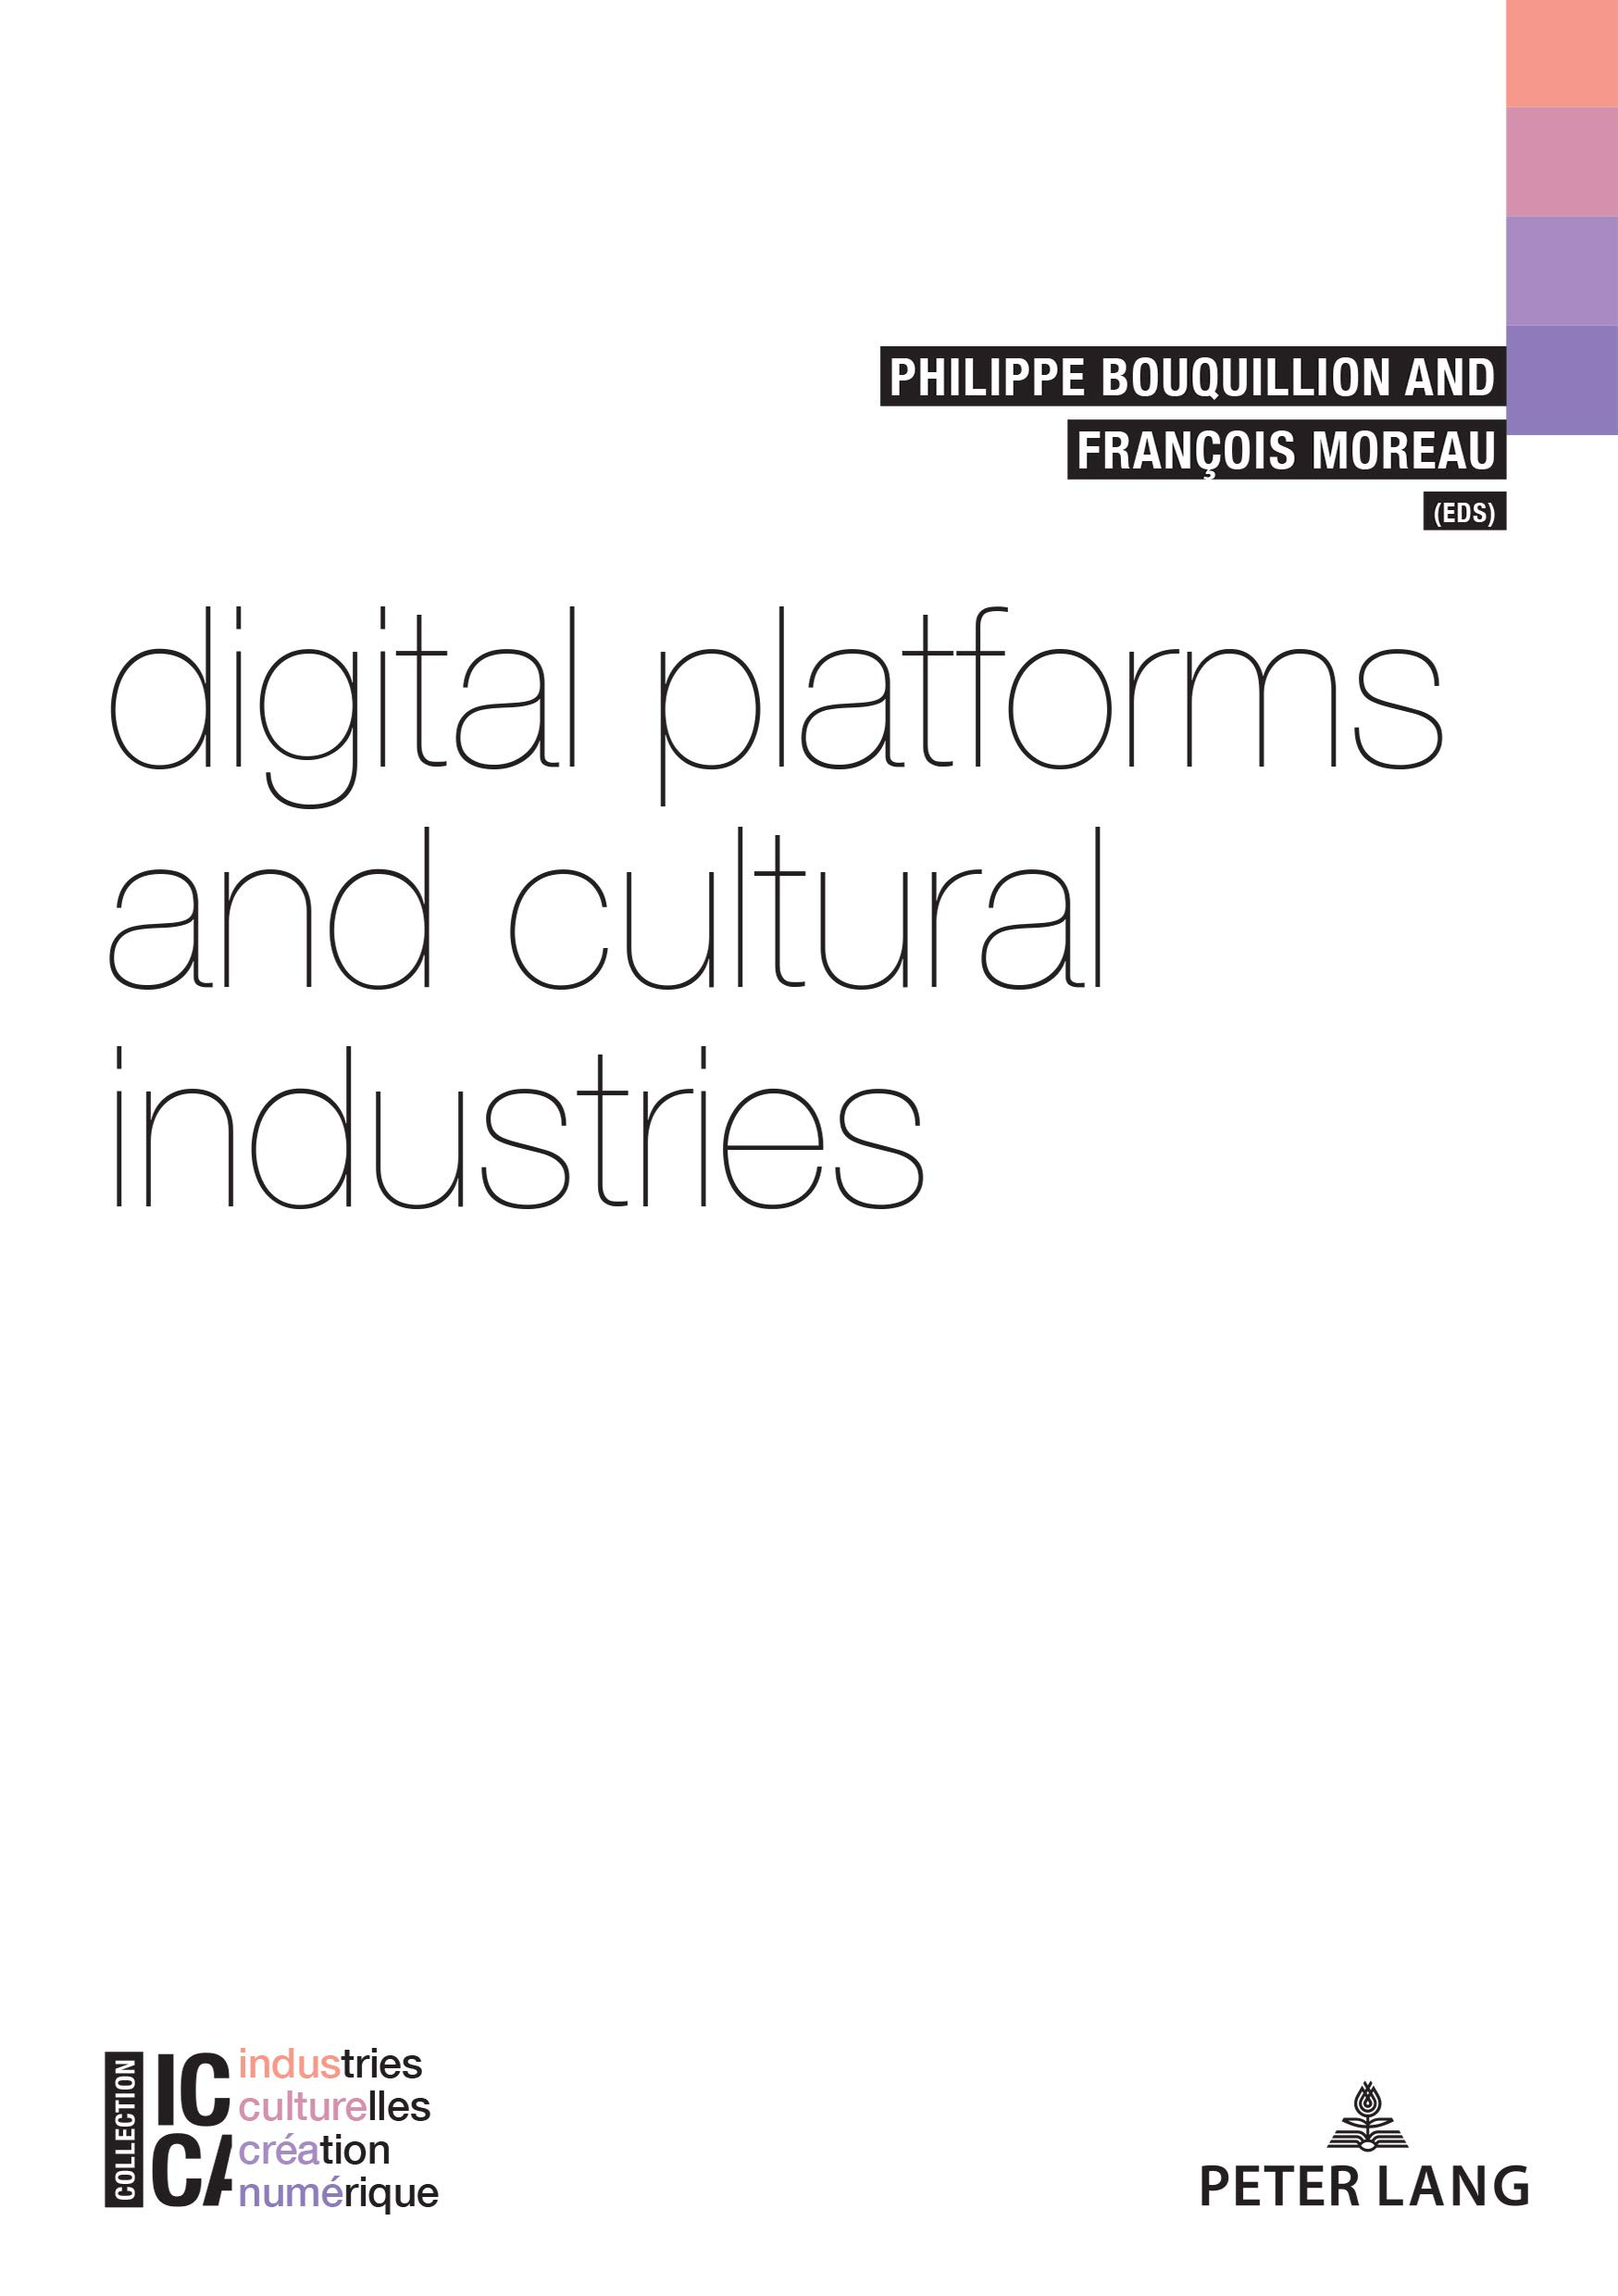 Digital Platforms and Cultural Industries (ICCA - Industries culturelles, creation, numerique)